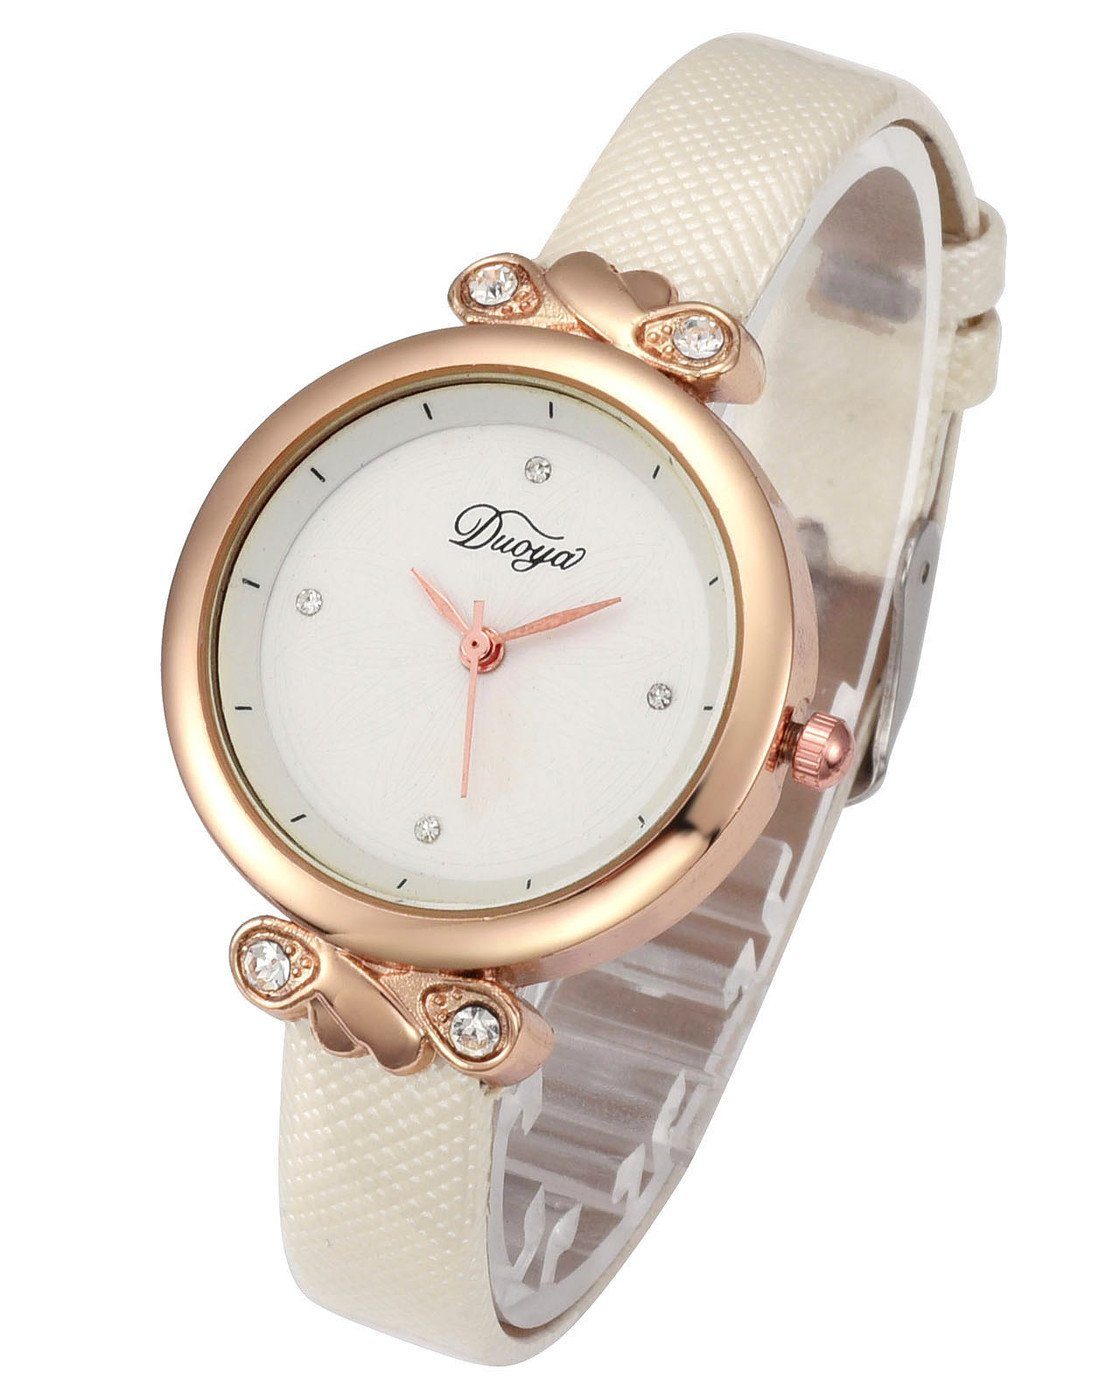 Top Plaza Women Fashion Watches Leather Band Luxury Analog Quartz Watches Girls Ladies Wristwatch - White